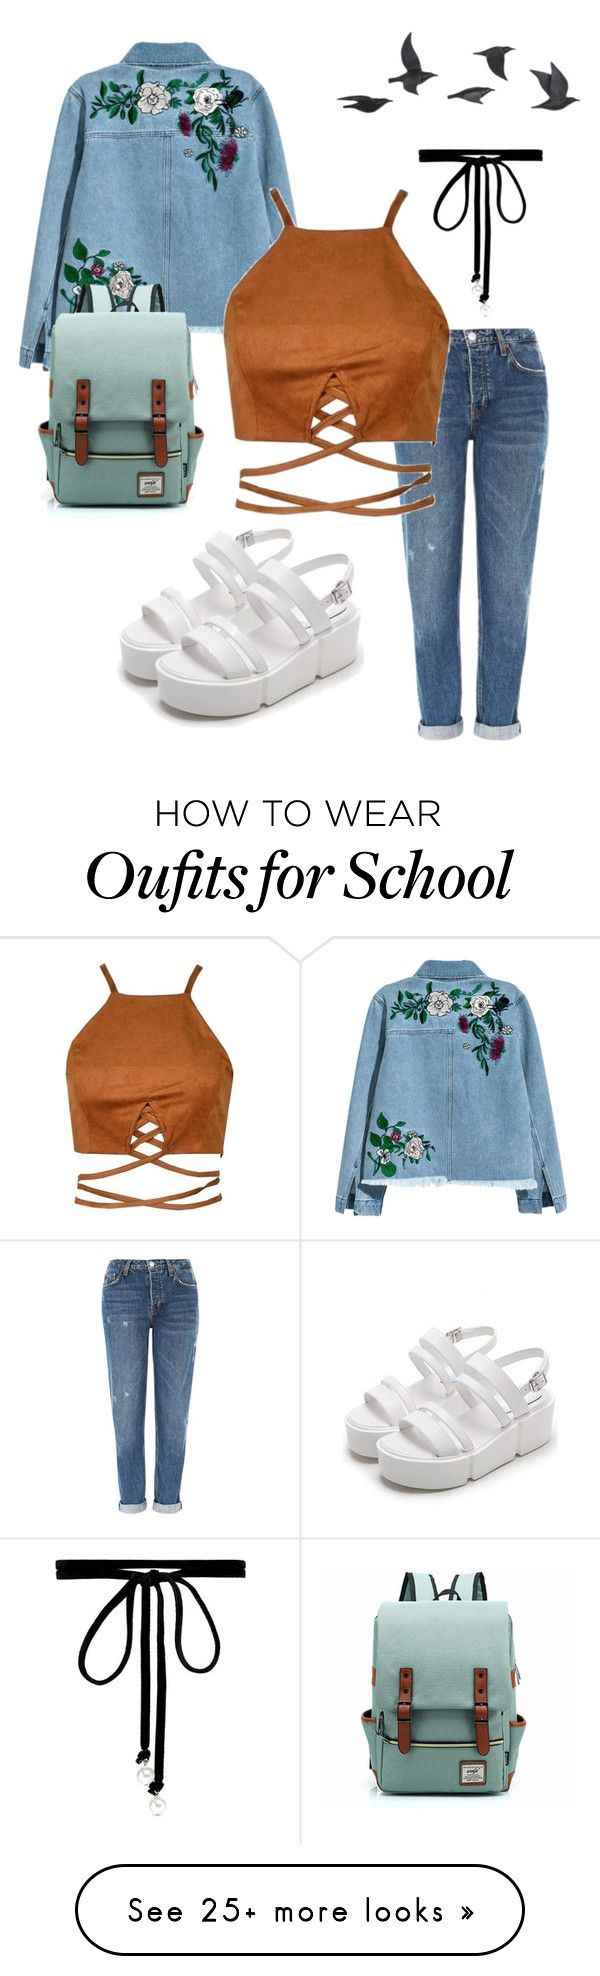 """Wishing I was cool"" by jessieroxyeah on Polyvore featuring Jayson Home, H&M, Topshop and Joomi Lim"